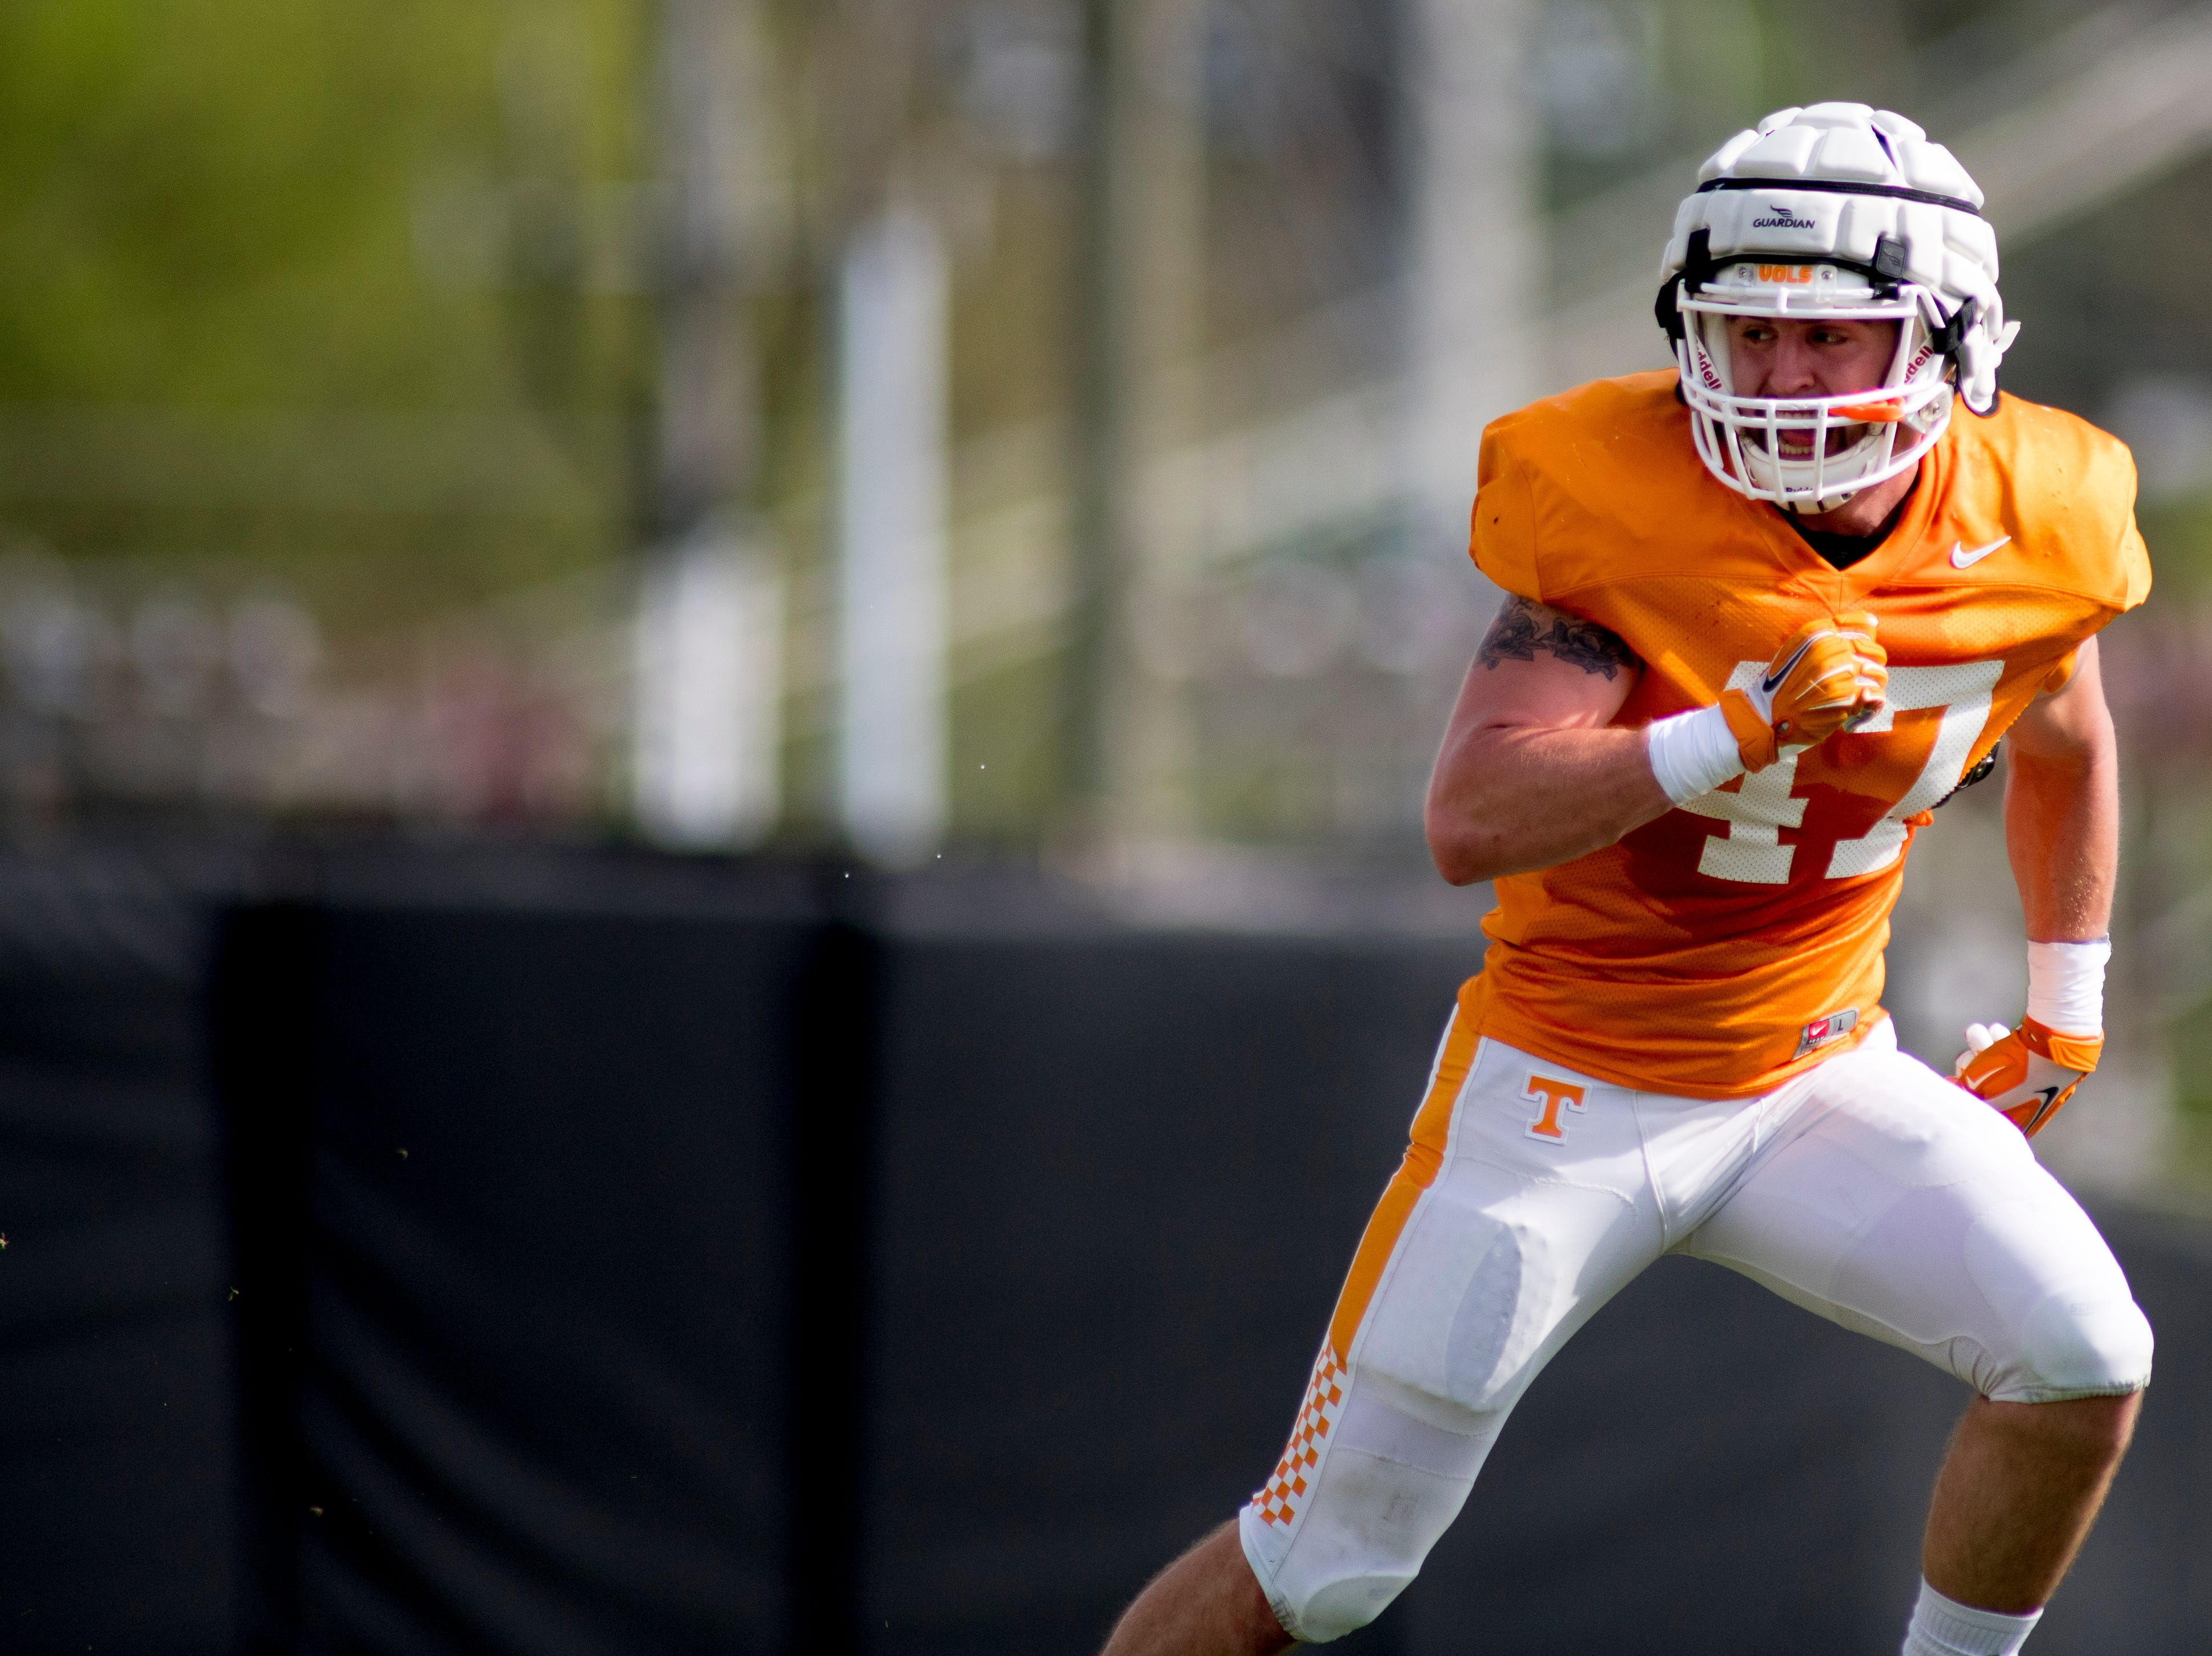 Tennessee's Landon Knoll (47) runs through a drill during Tennessee spring practice at Haslam Field in Knoxville, Tennessee on Thursday, April 11, 2019.